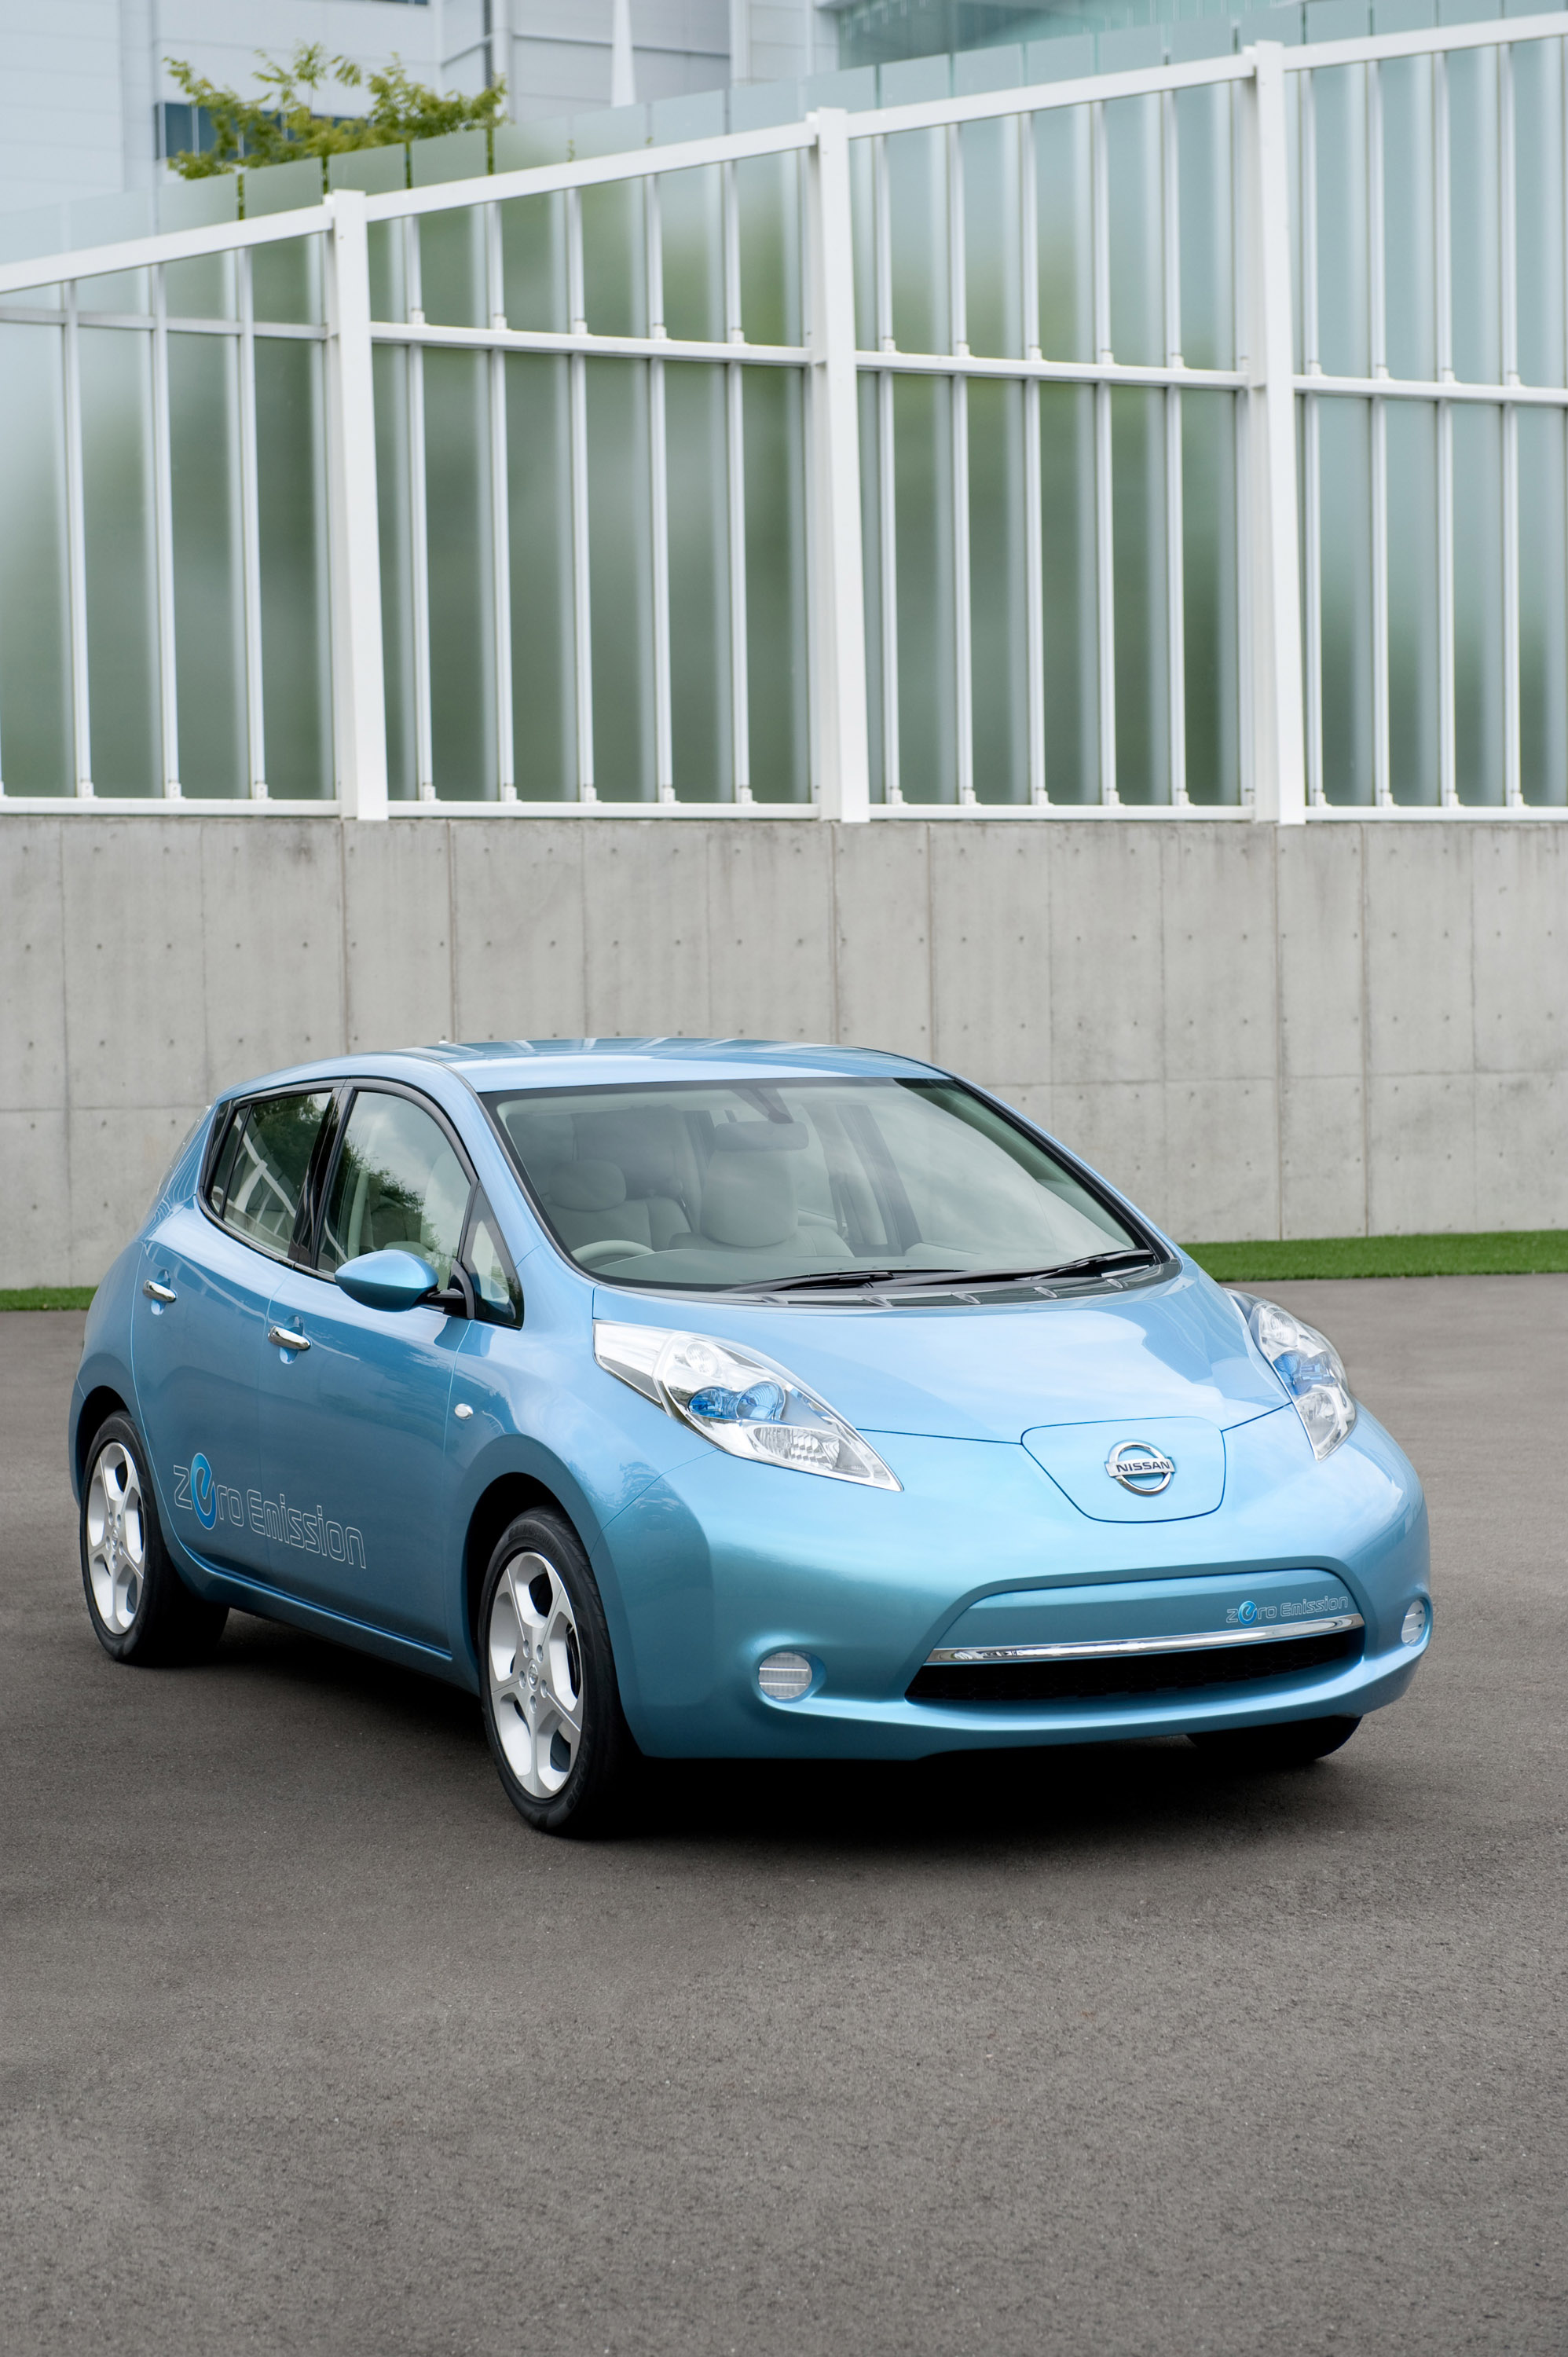 Nissan LEAF 100% electric vehicle production started